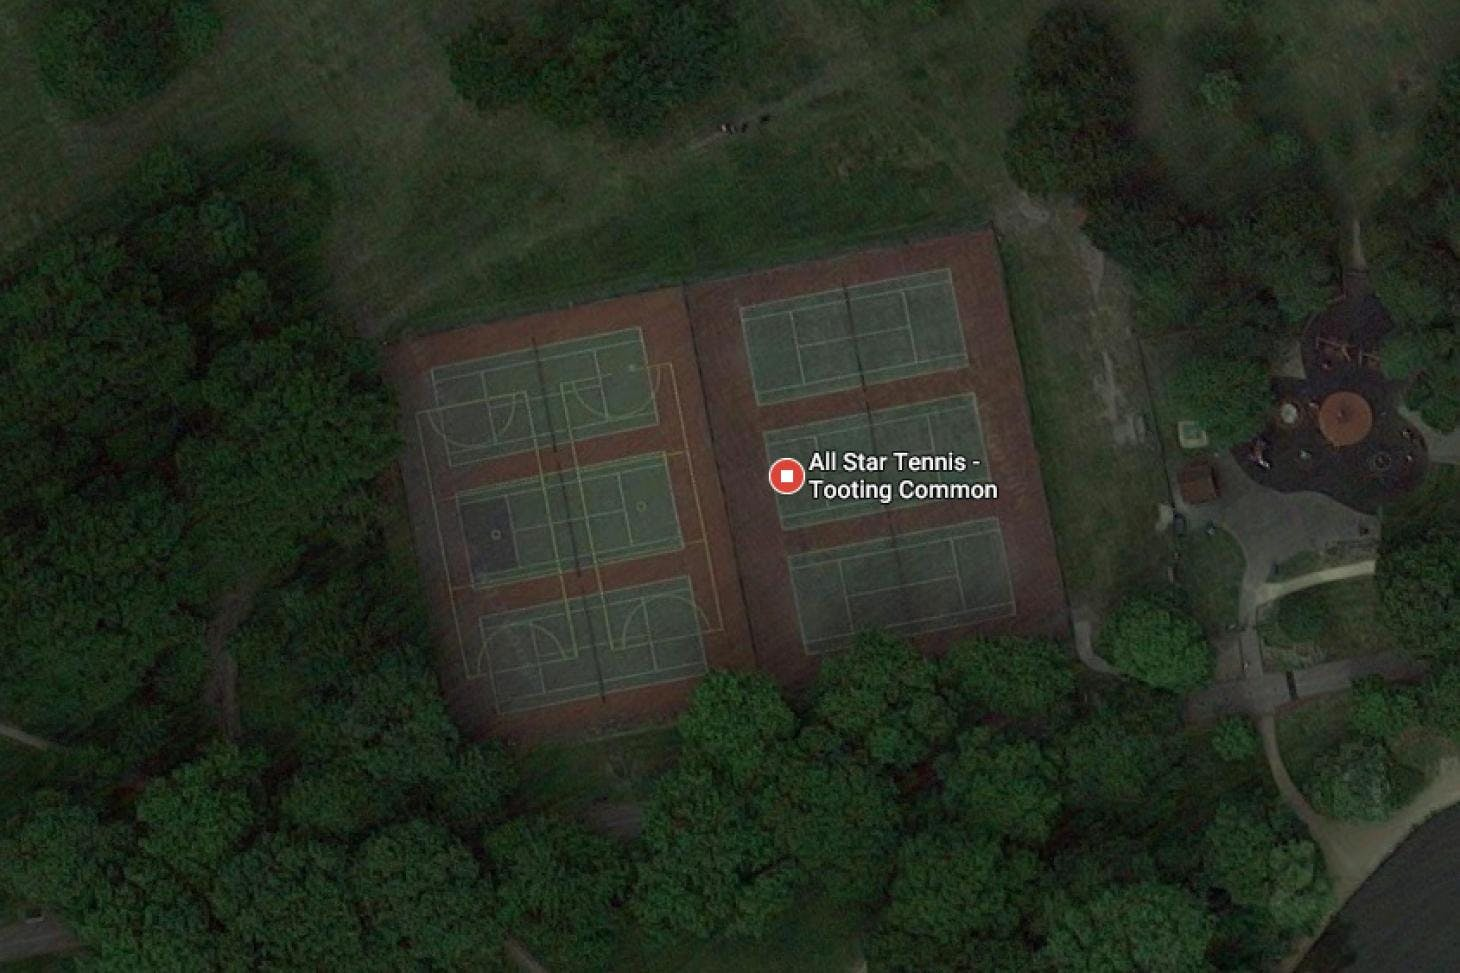 Tooting Common Outdoor | Hard (macadam) tennis court